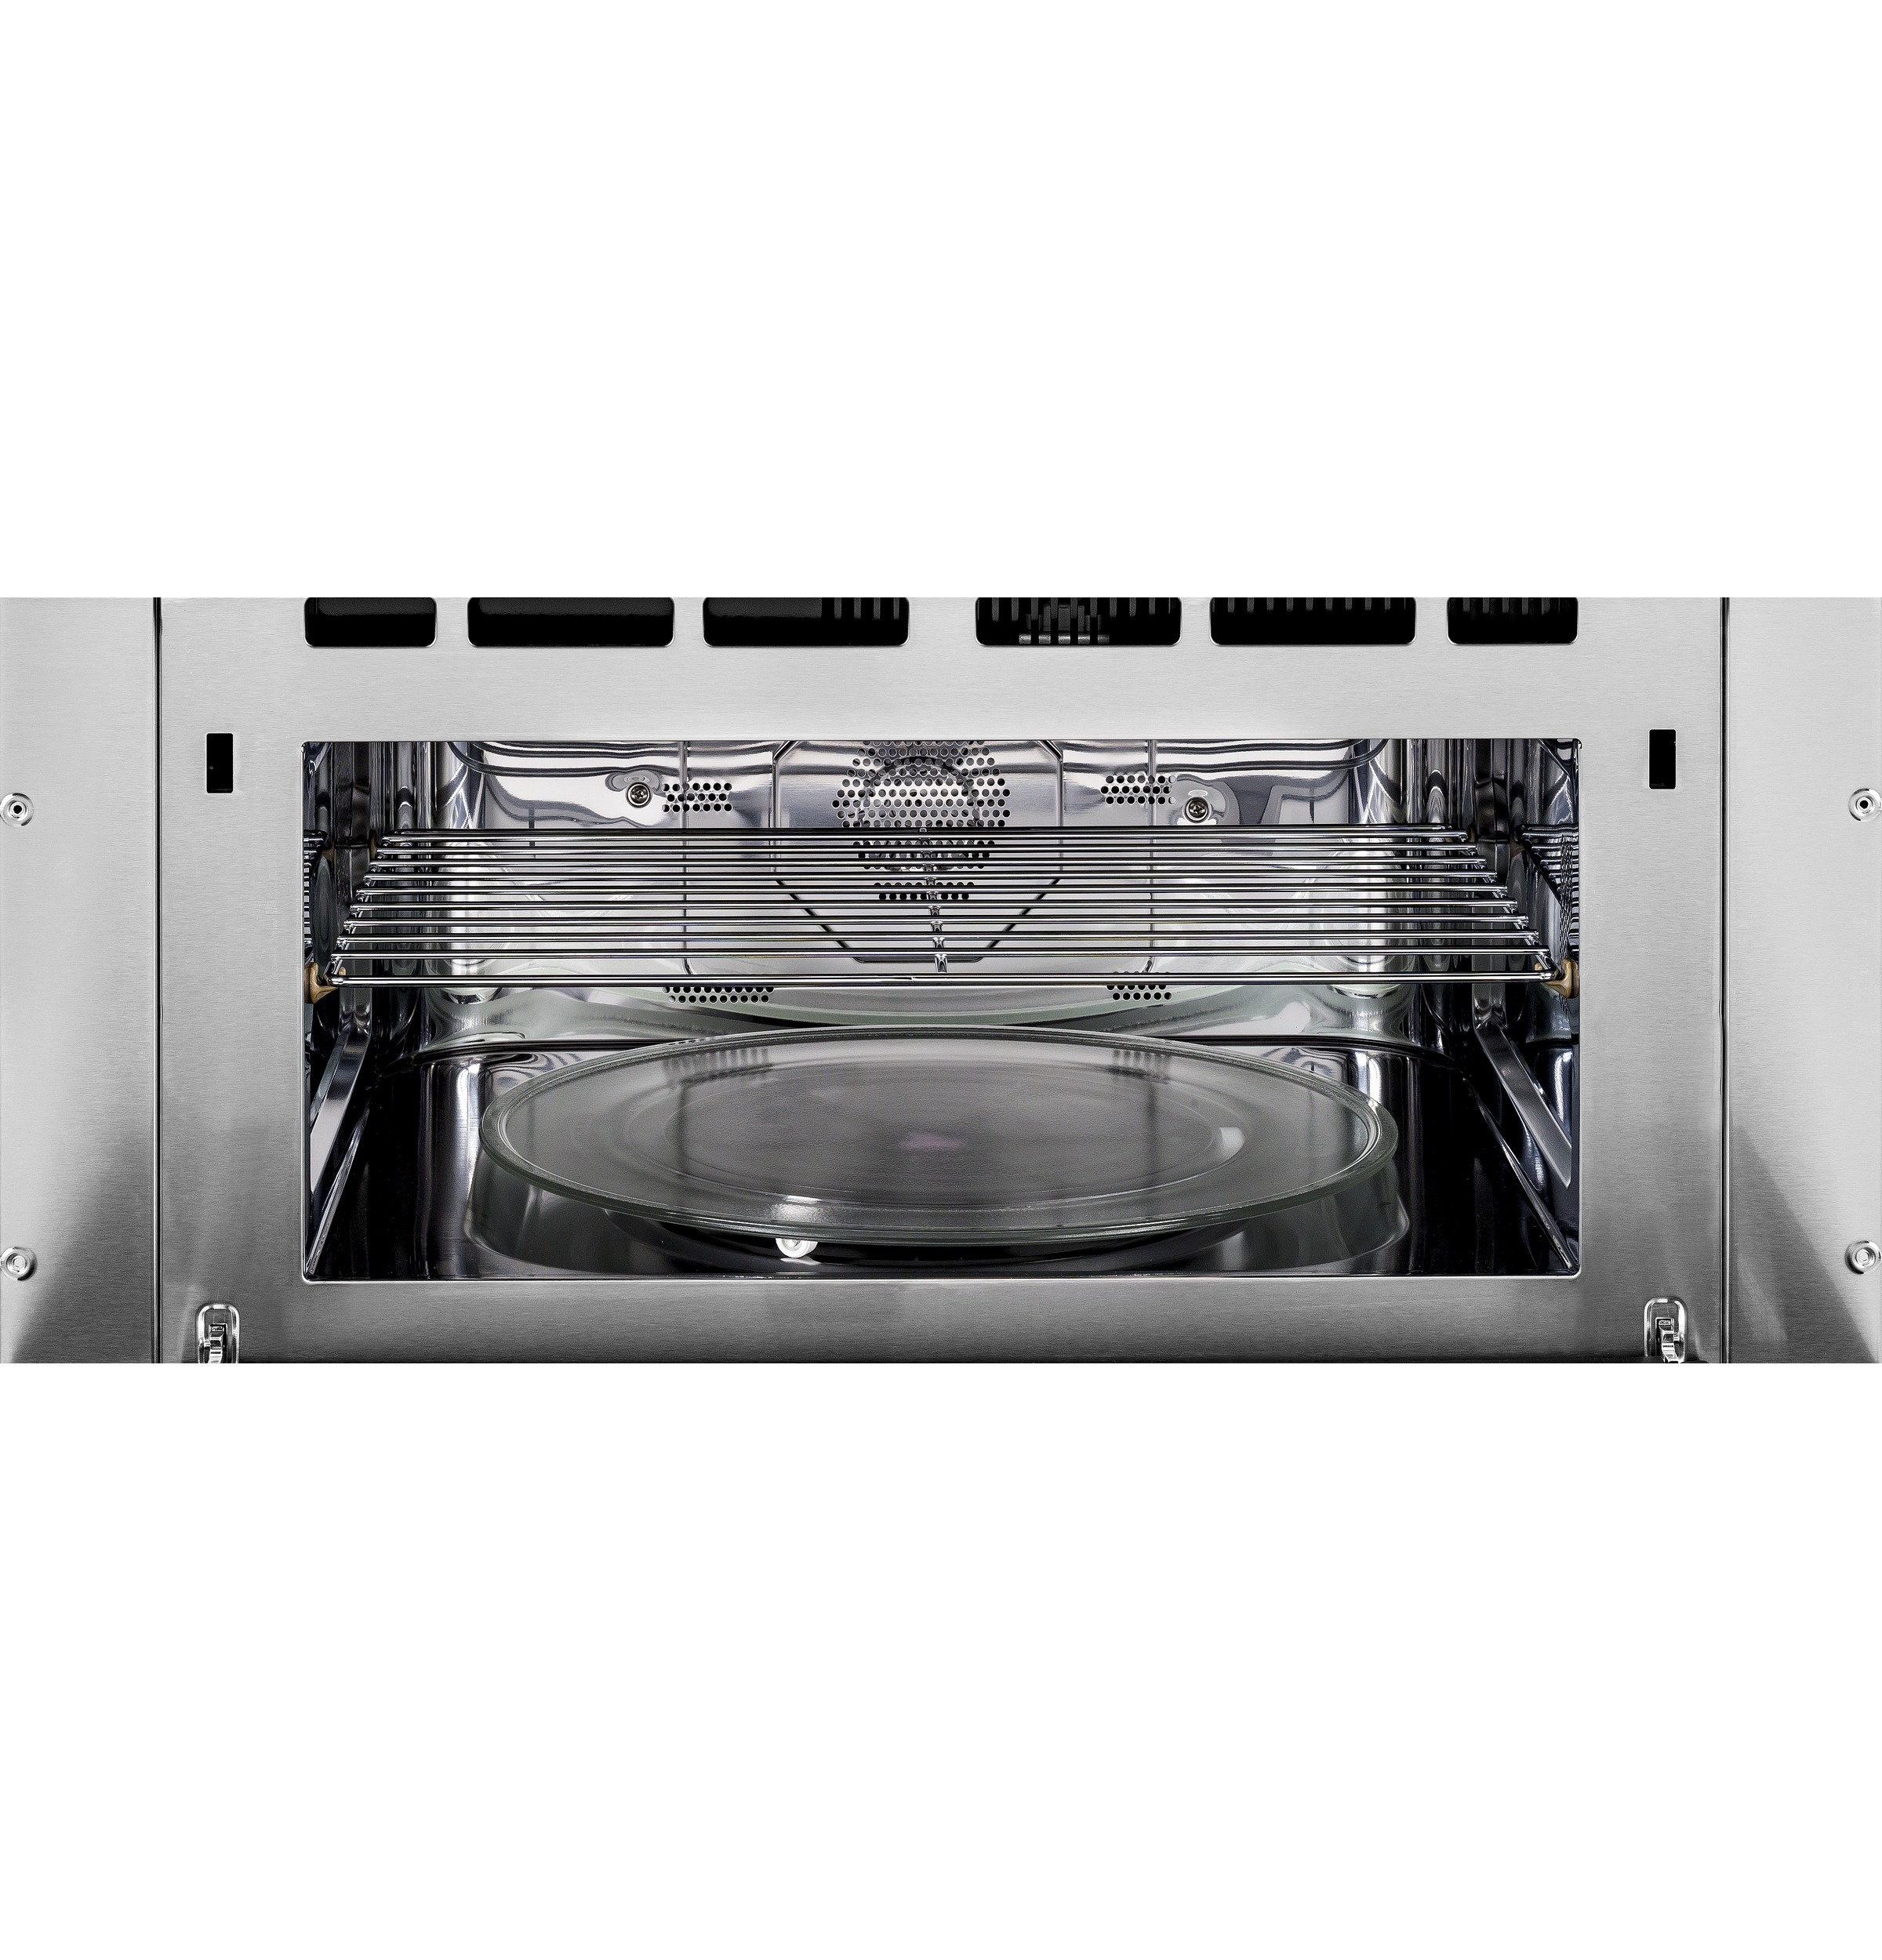 Model: PSB9240BLTS | GE Profile™ Series 30 in. Single Wall Oven with Advantium® Technology